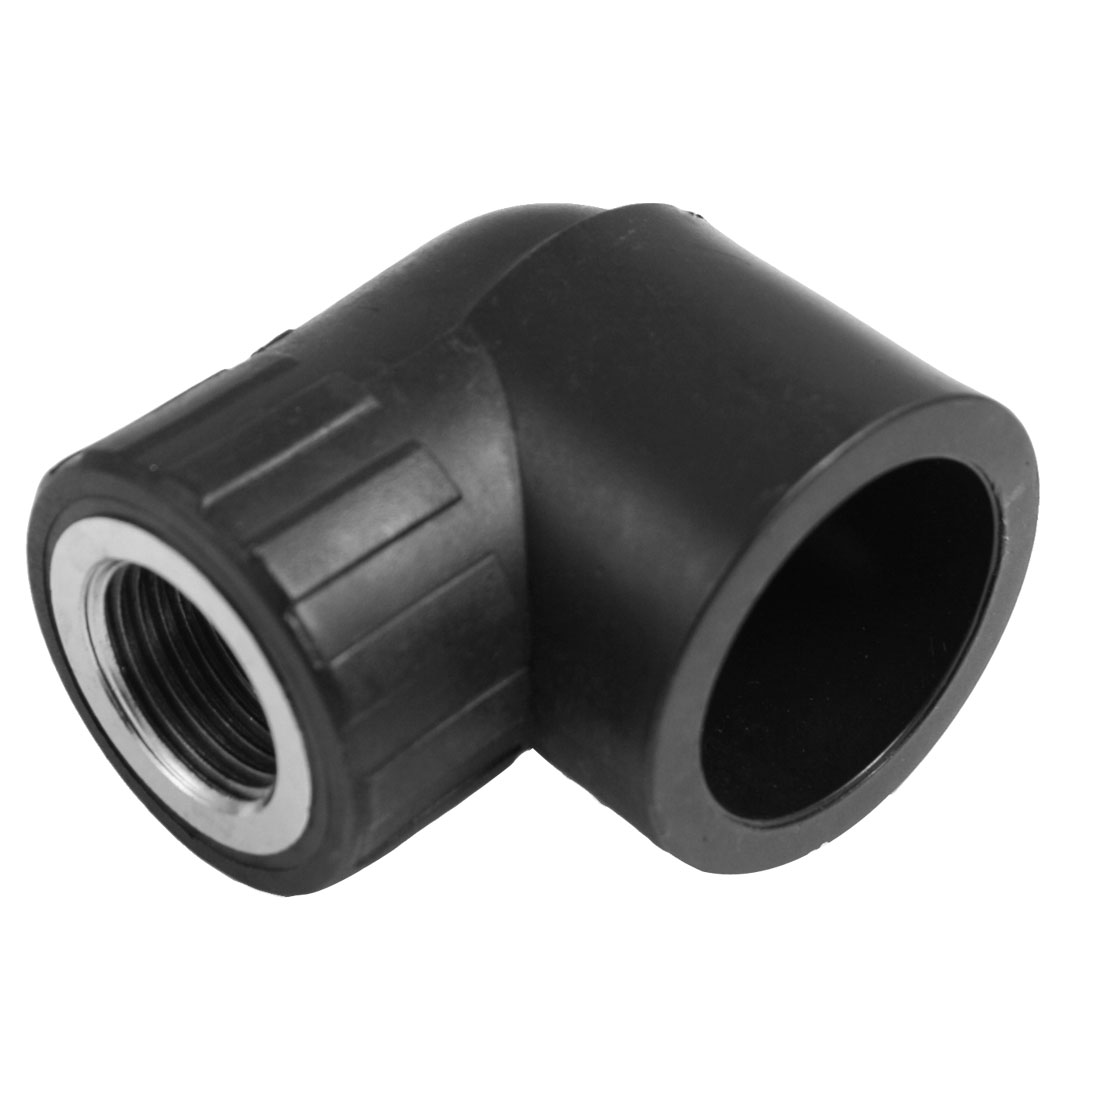 "PT 1/2"" Female Thread 32mm HDPE Slip 90 Degree Pipe Elbow Connector"